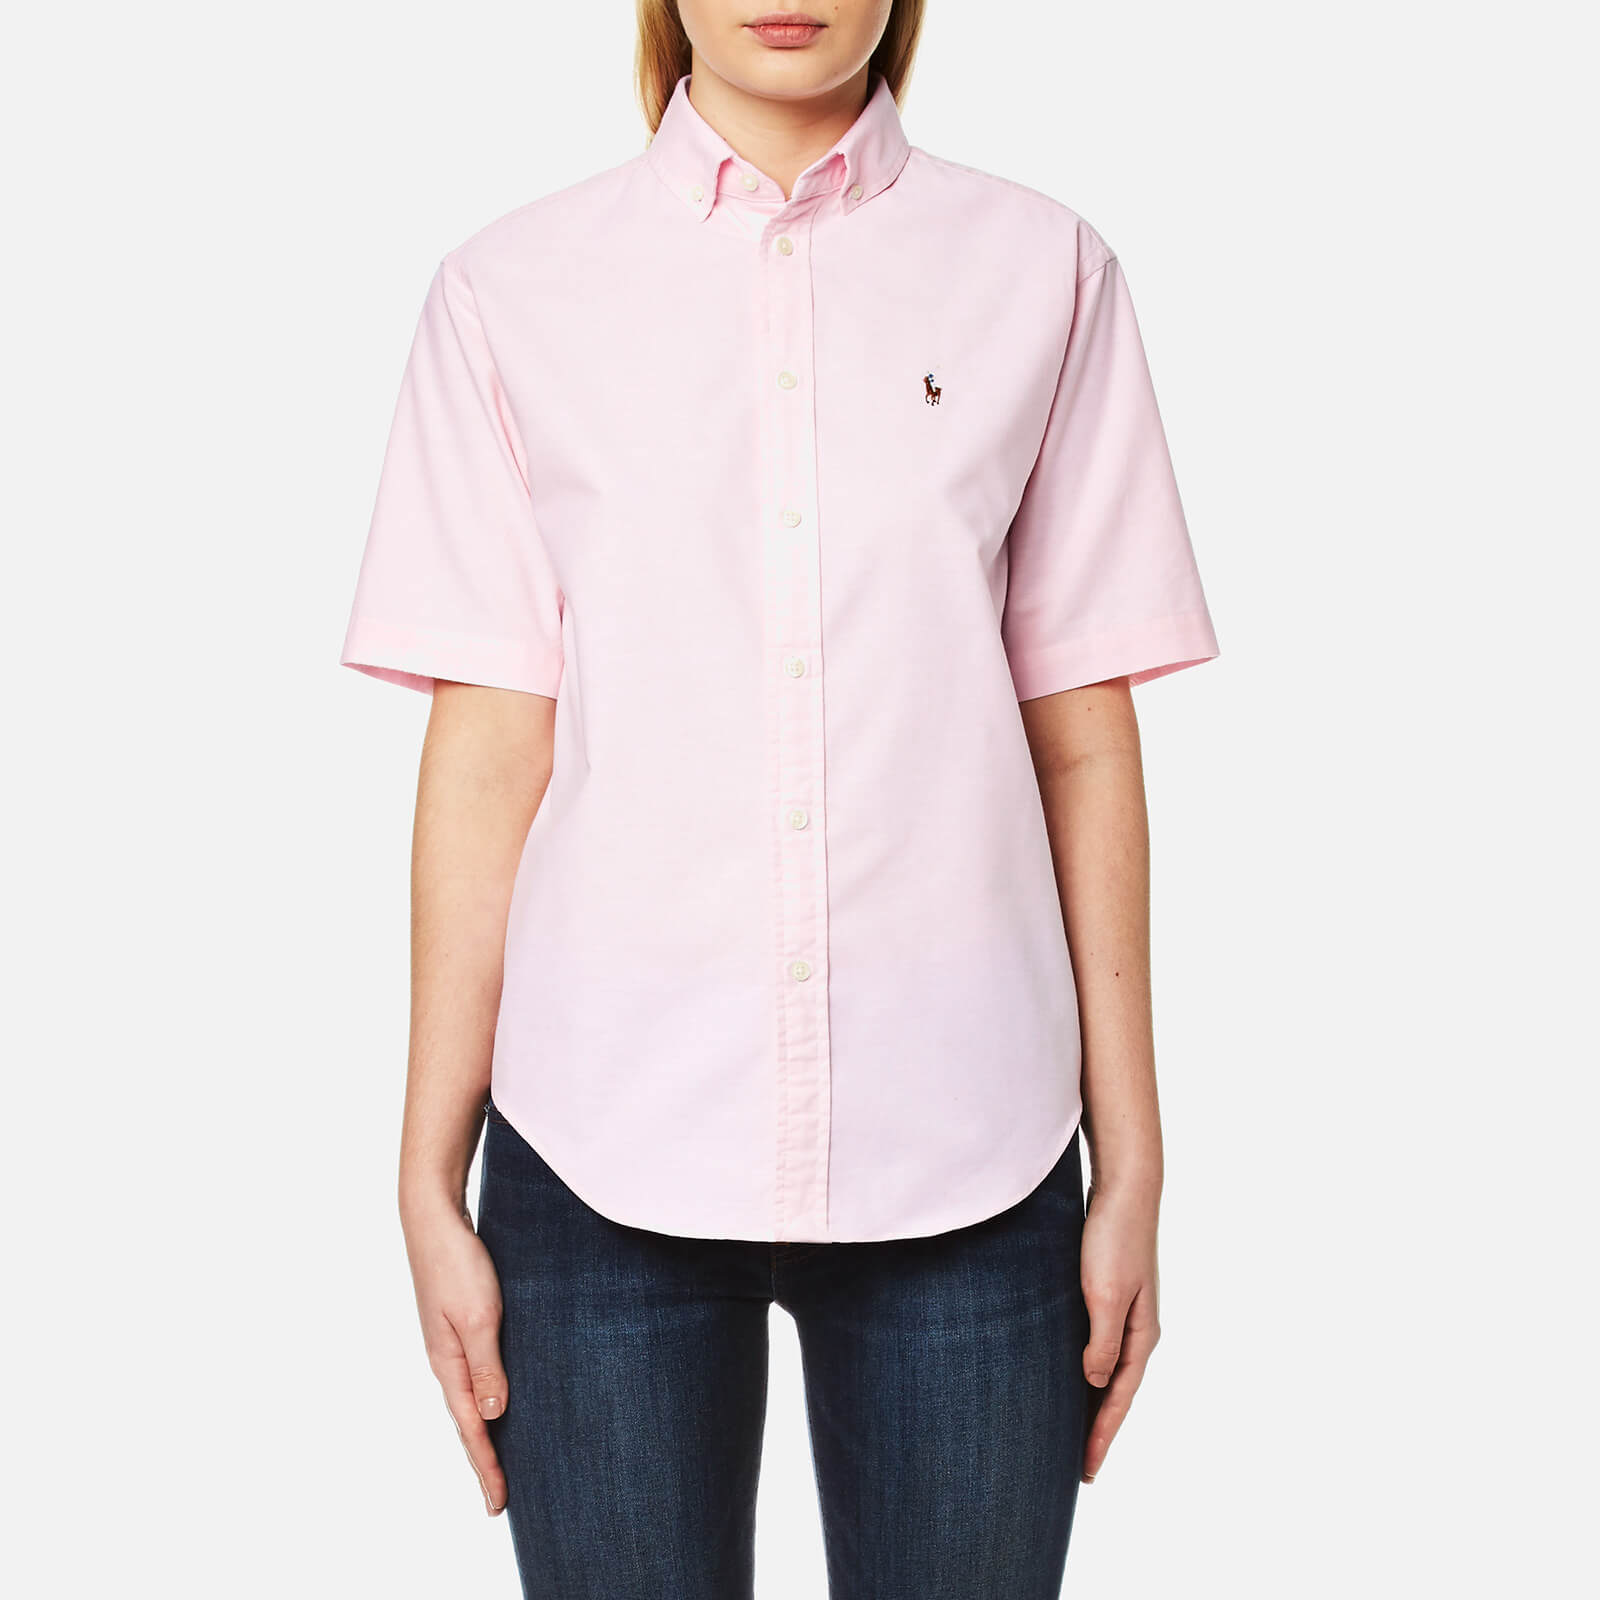 3a48685e3 Polo Ralph Lauren Women's Short Sleeve Shirt - Deco Pink - Free UK Delivery  over £50